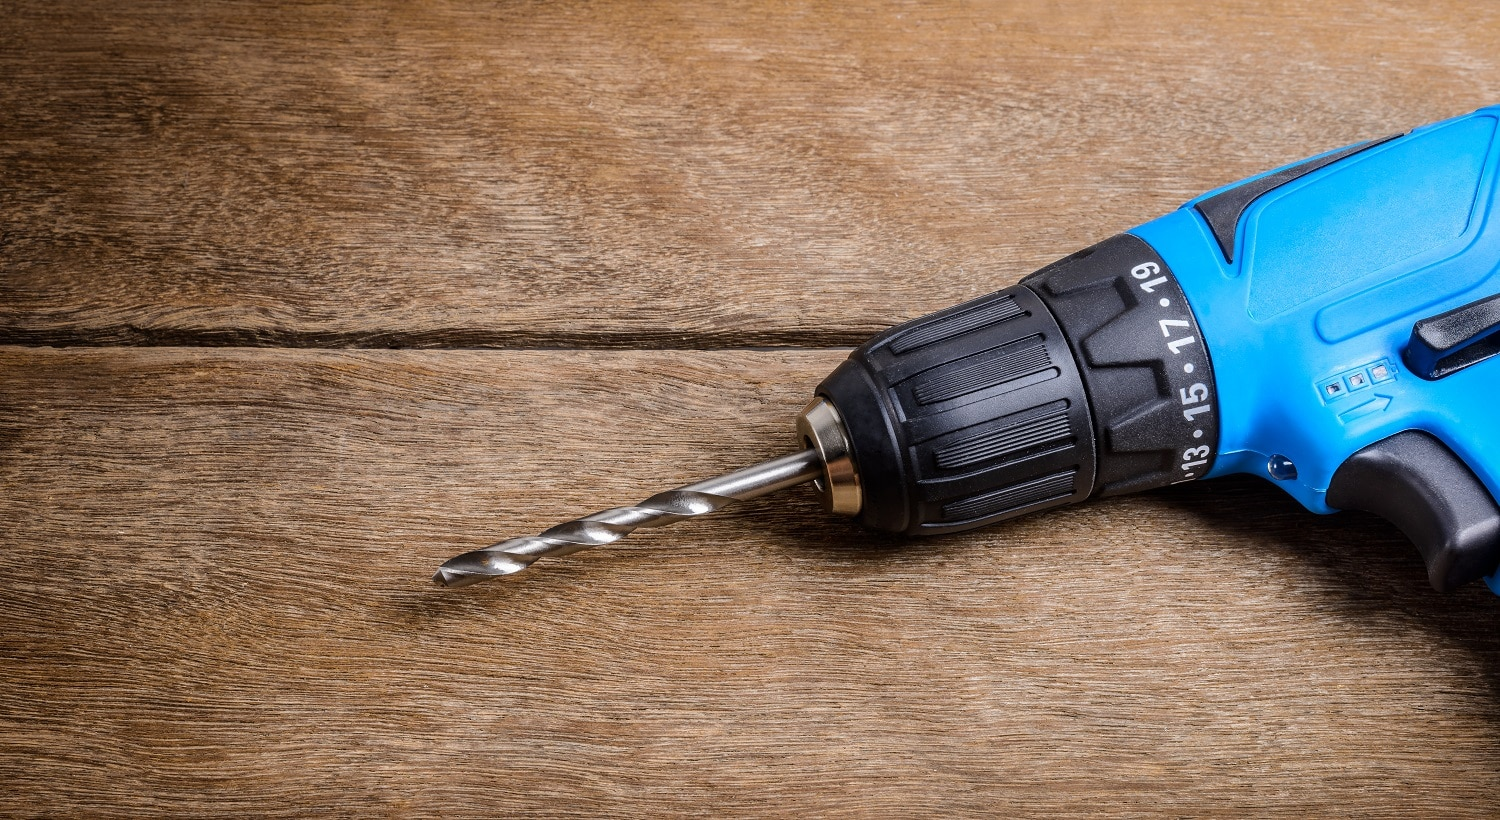 Close up Electric drill on wooden table background and copy space. Hammer drill or screwdriver, Electric cordless hand drill on wooden. maintenance home concept.